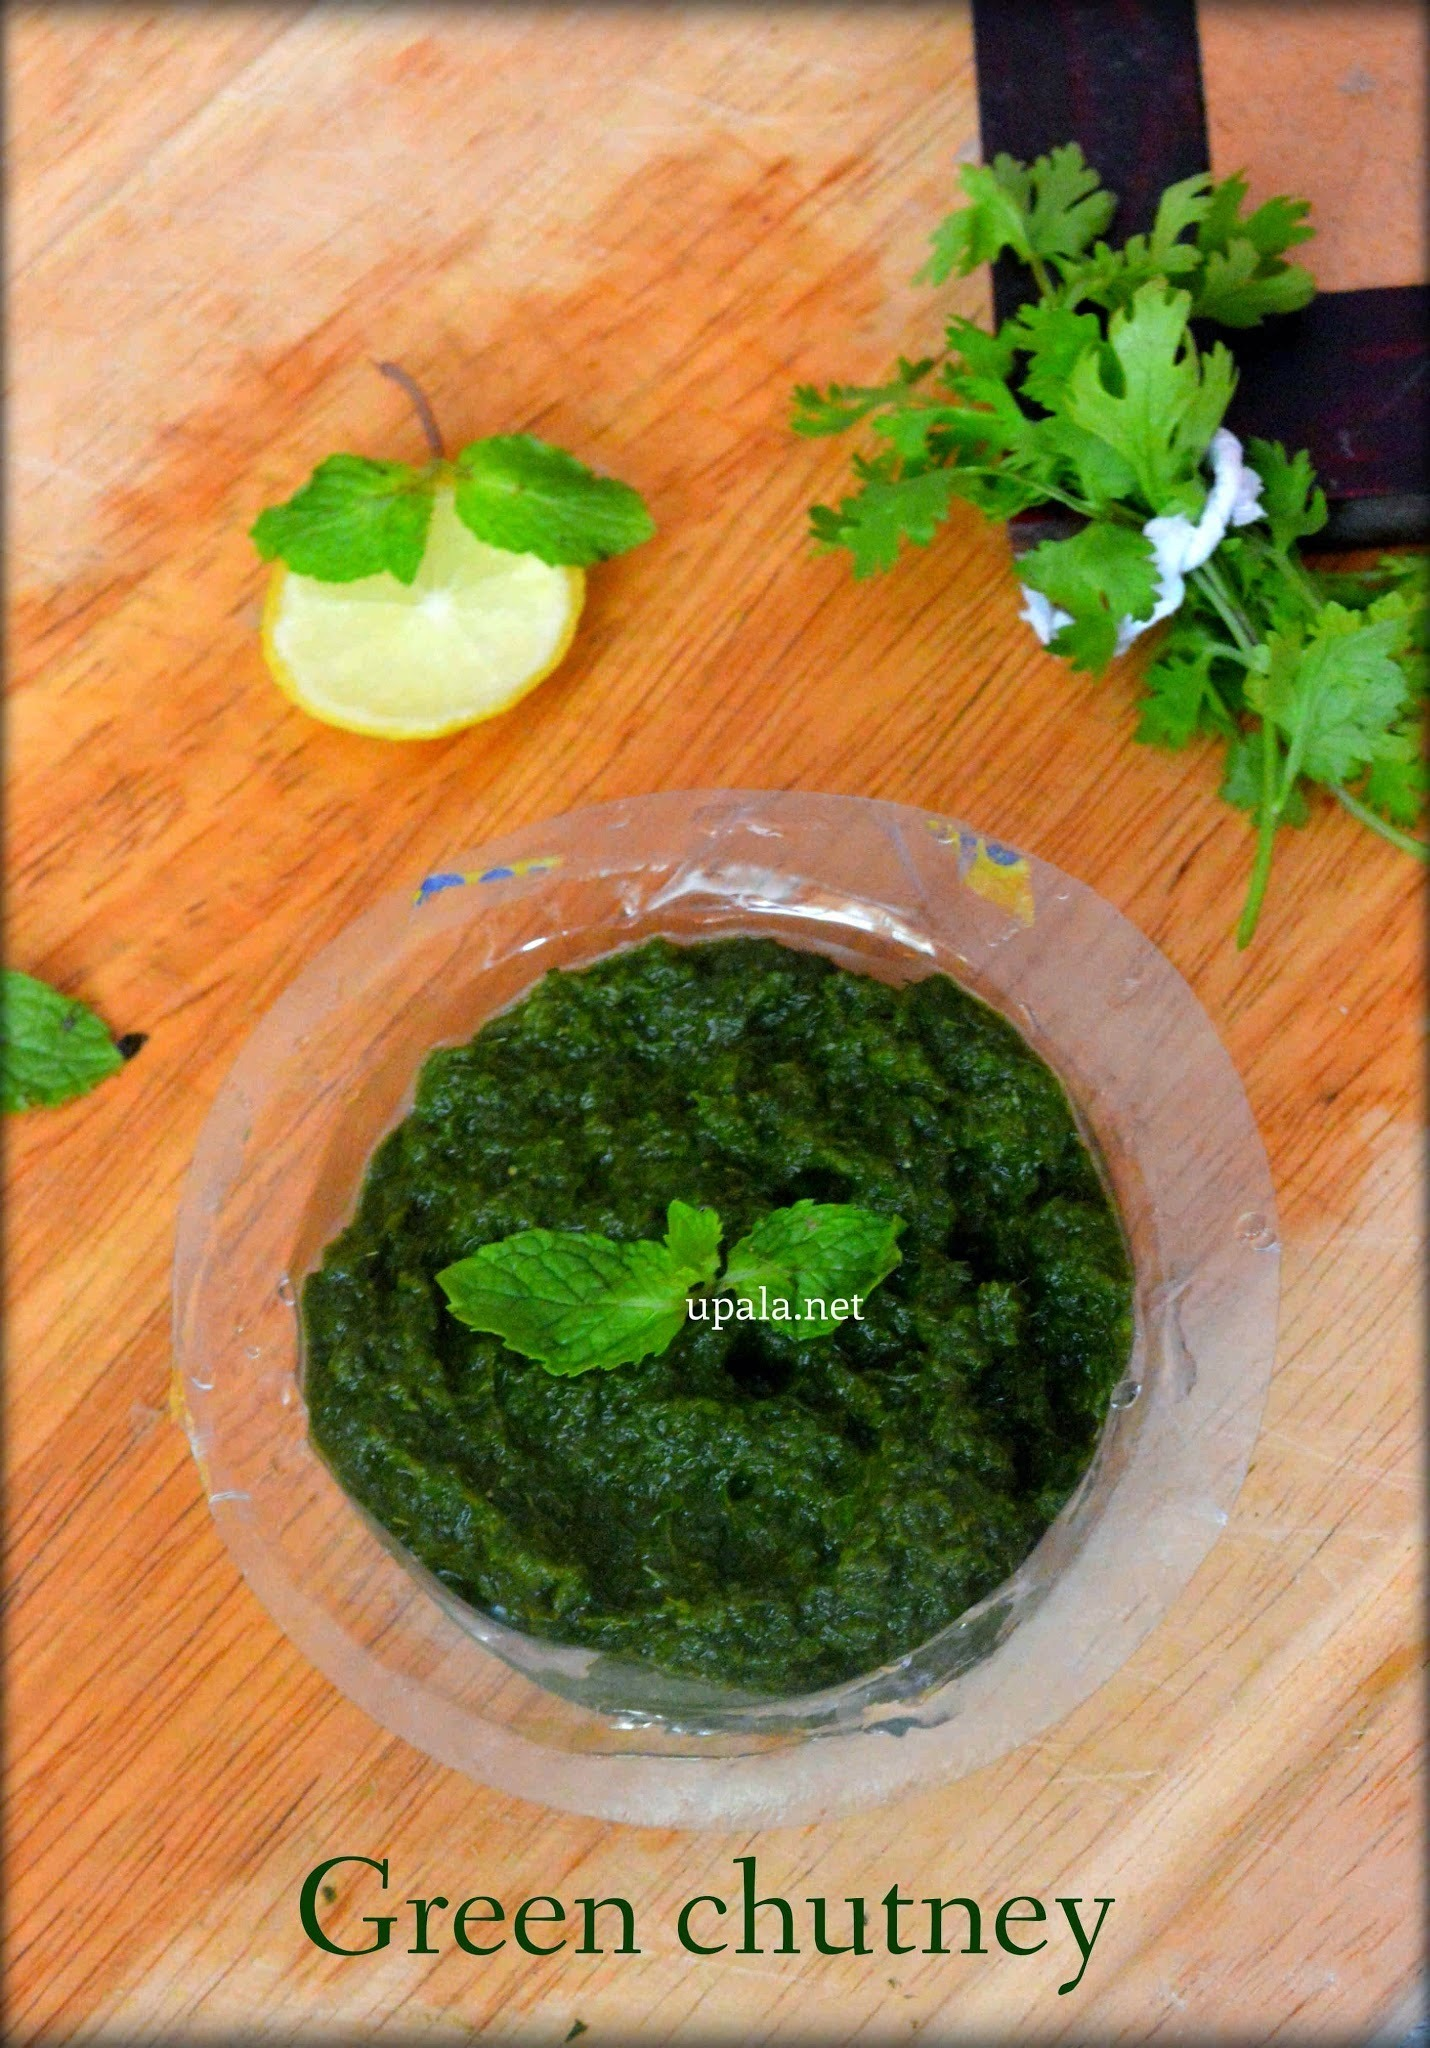 Green chutney for Chaats/Mint Coriander chutney